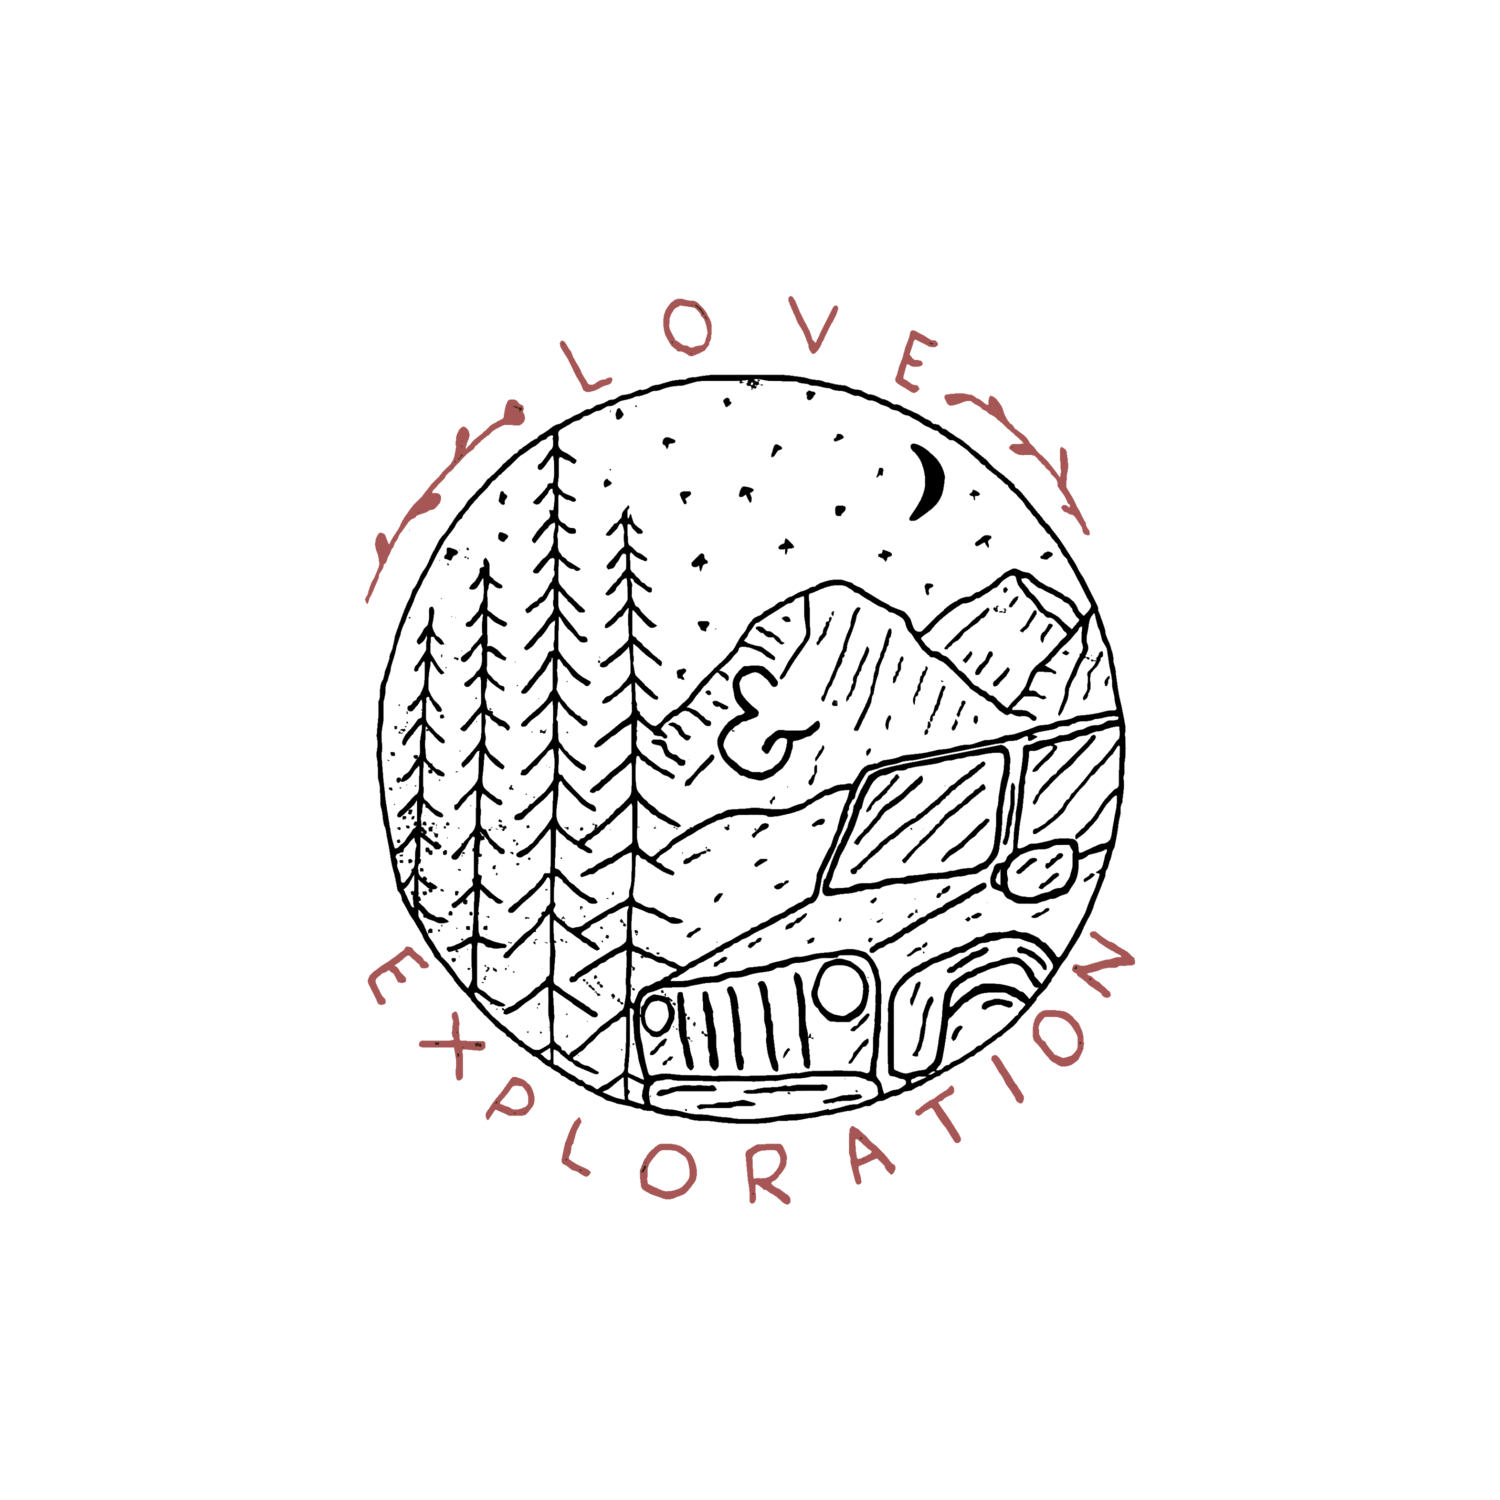 LOVE + EXPLORATION